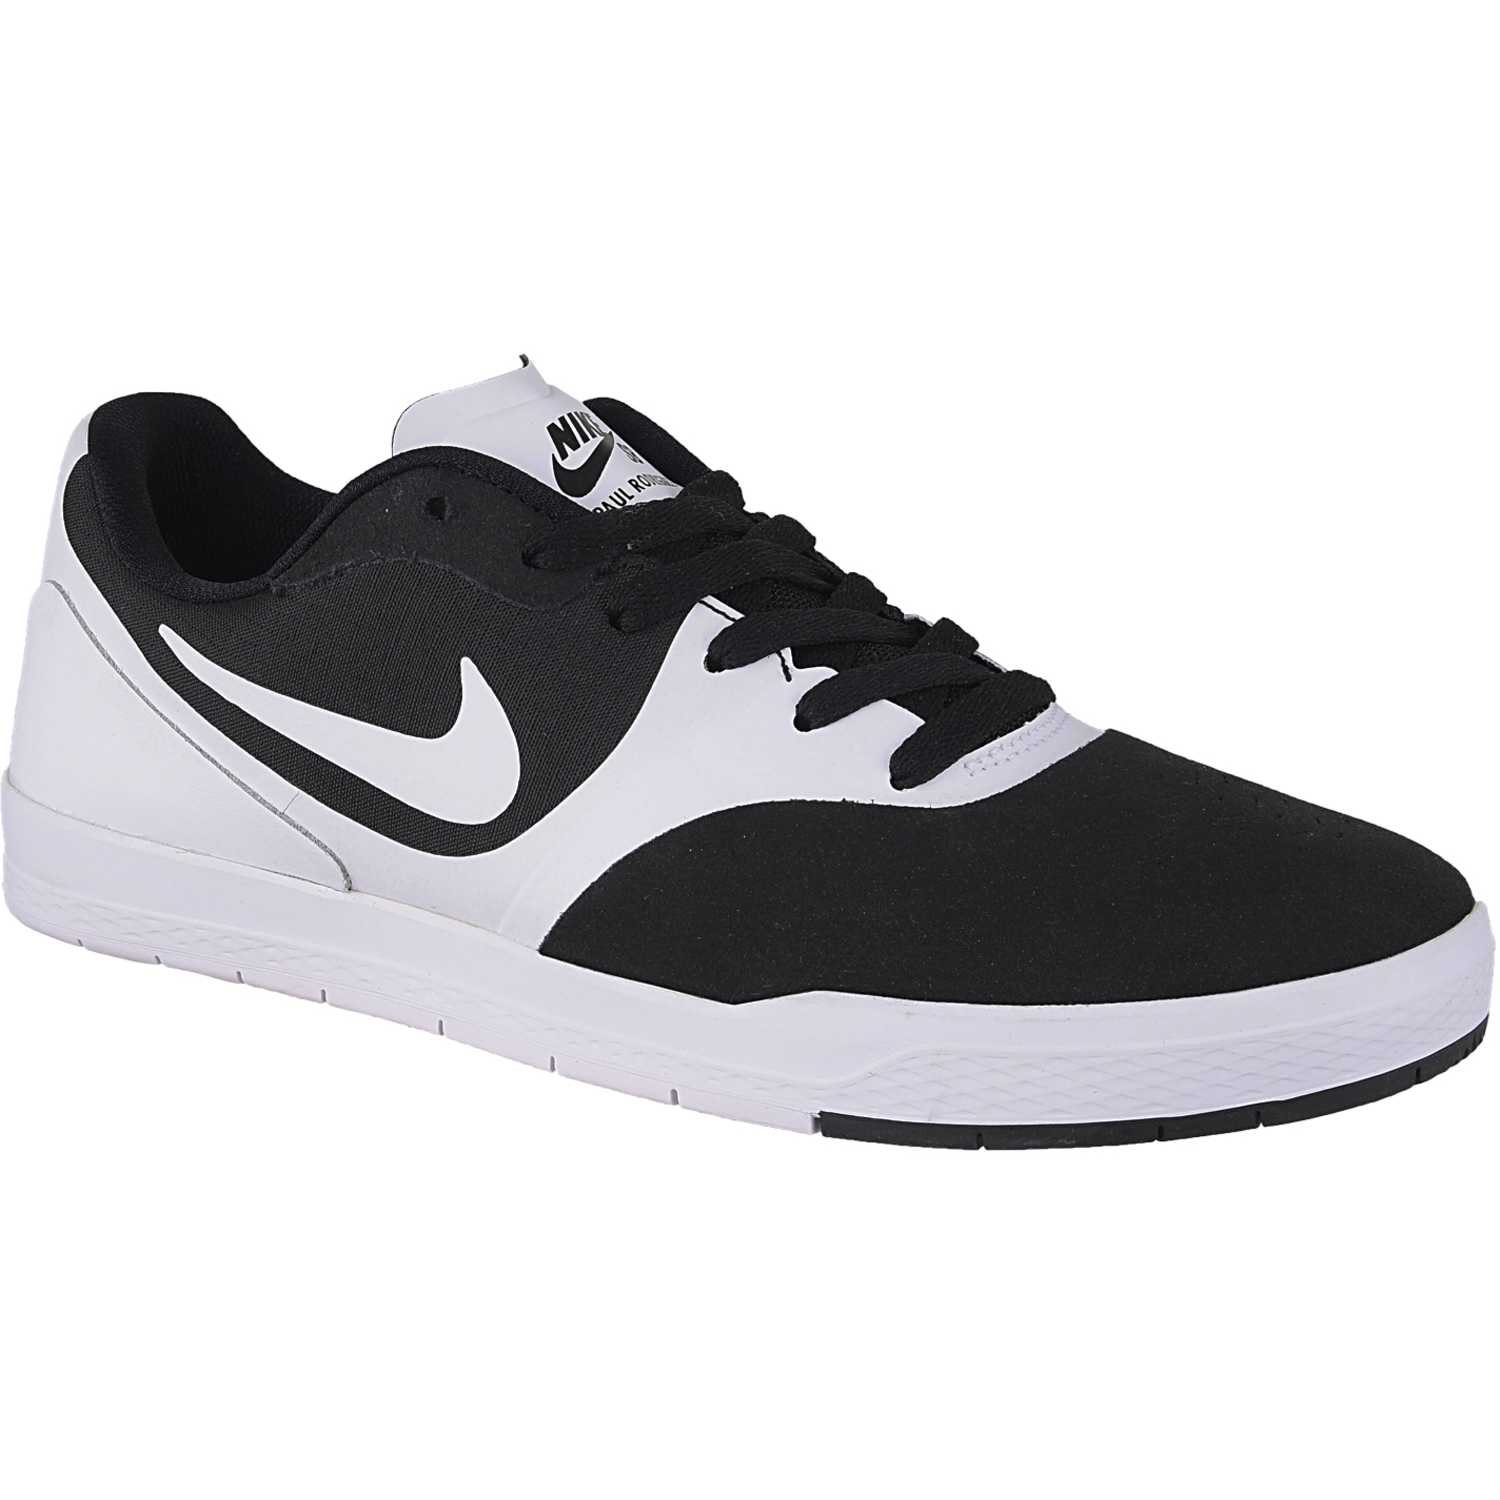 huge selection of 236e0 e5e01 ... nike blanco negro de hombre modelo paul rodriguez 9 cs casual deportivo  skate zapatillas casual